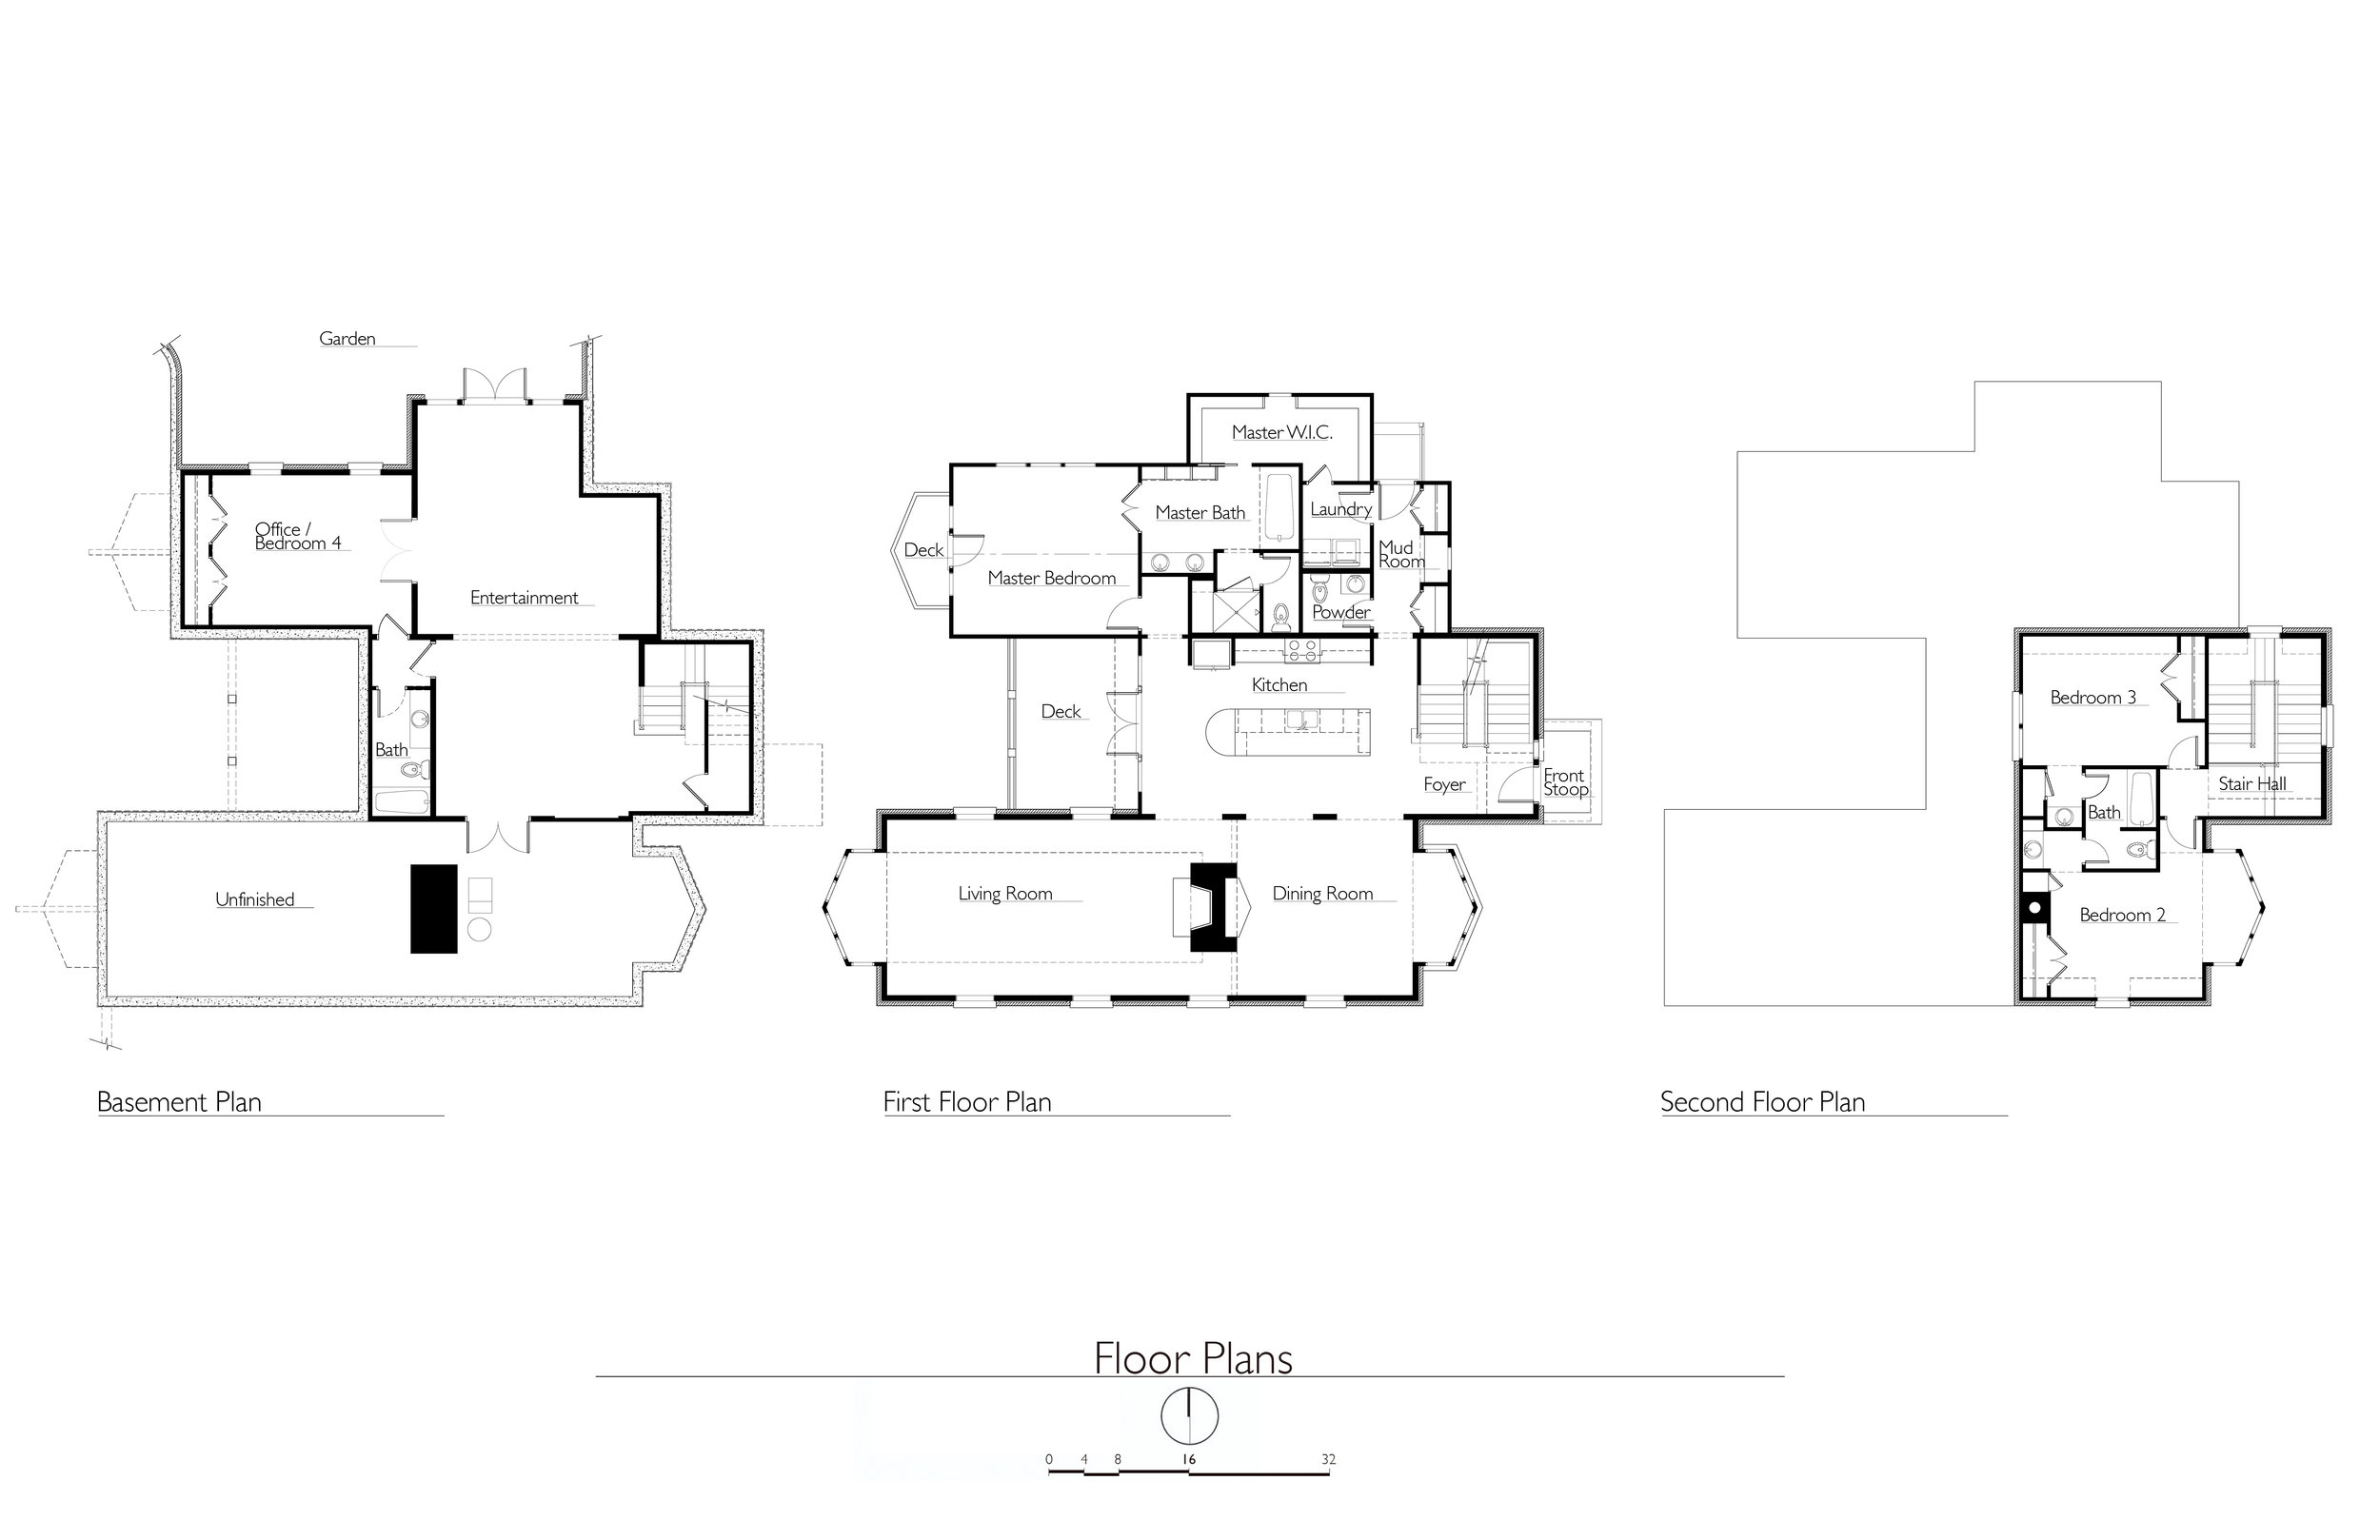 Floor Plans-revised-2.jpg